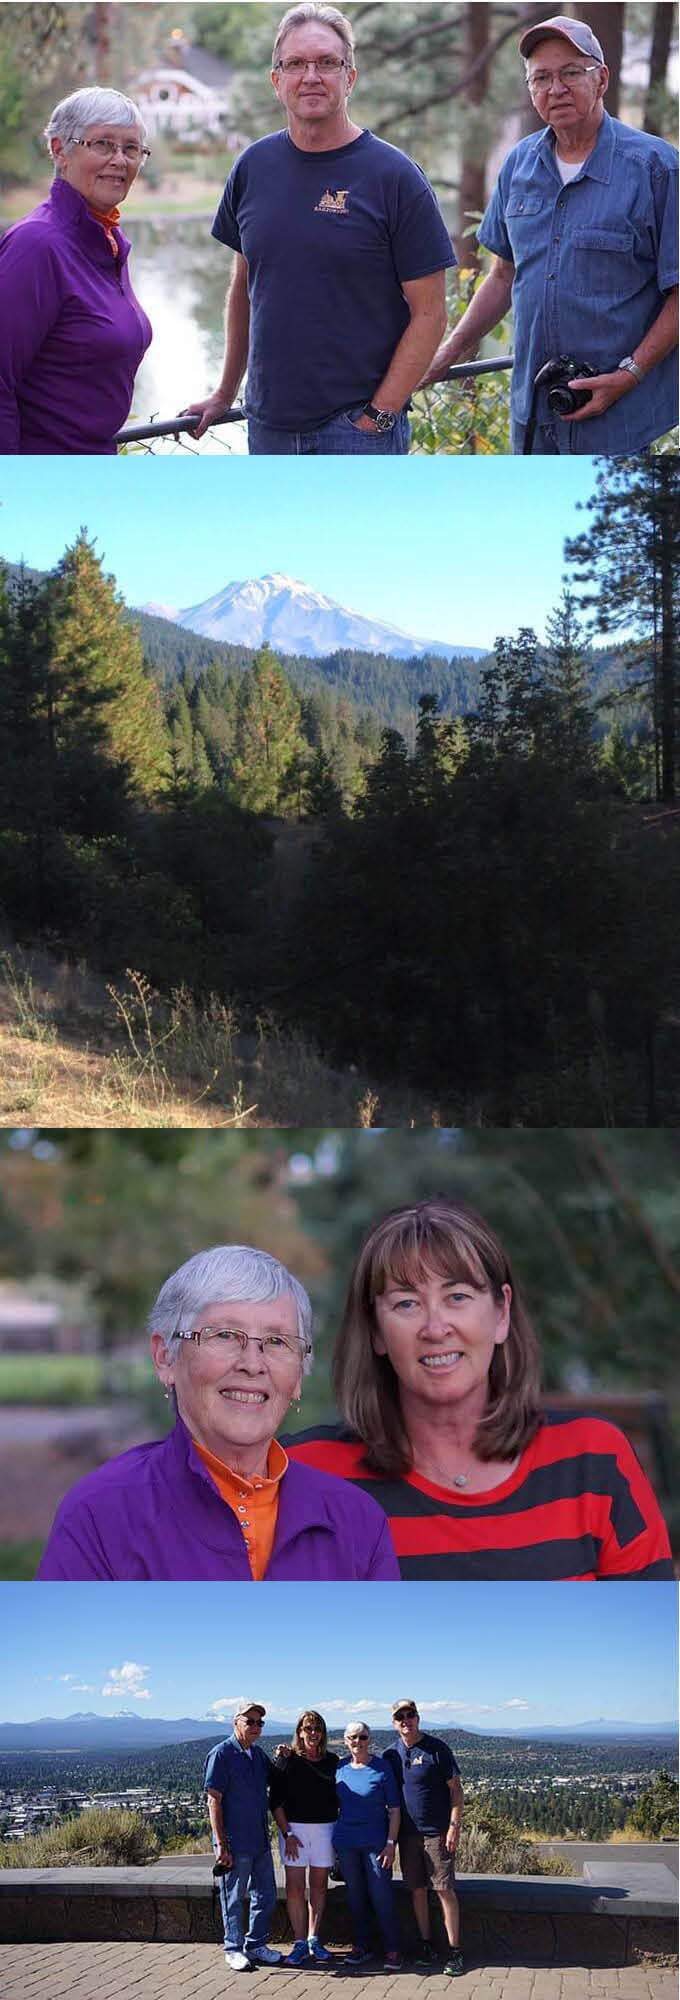 Collage of family photos and a picture of Mount Shasta